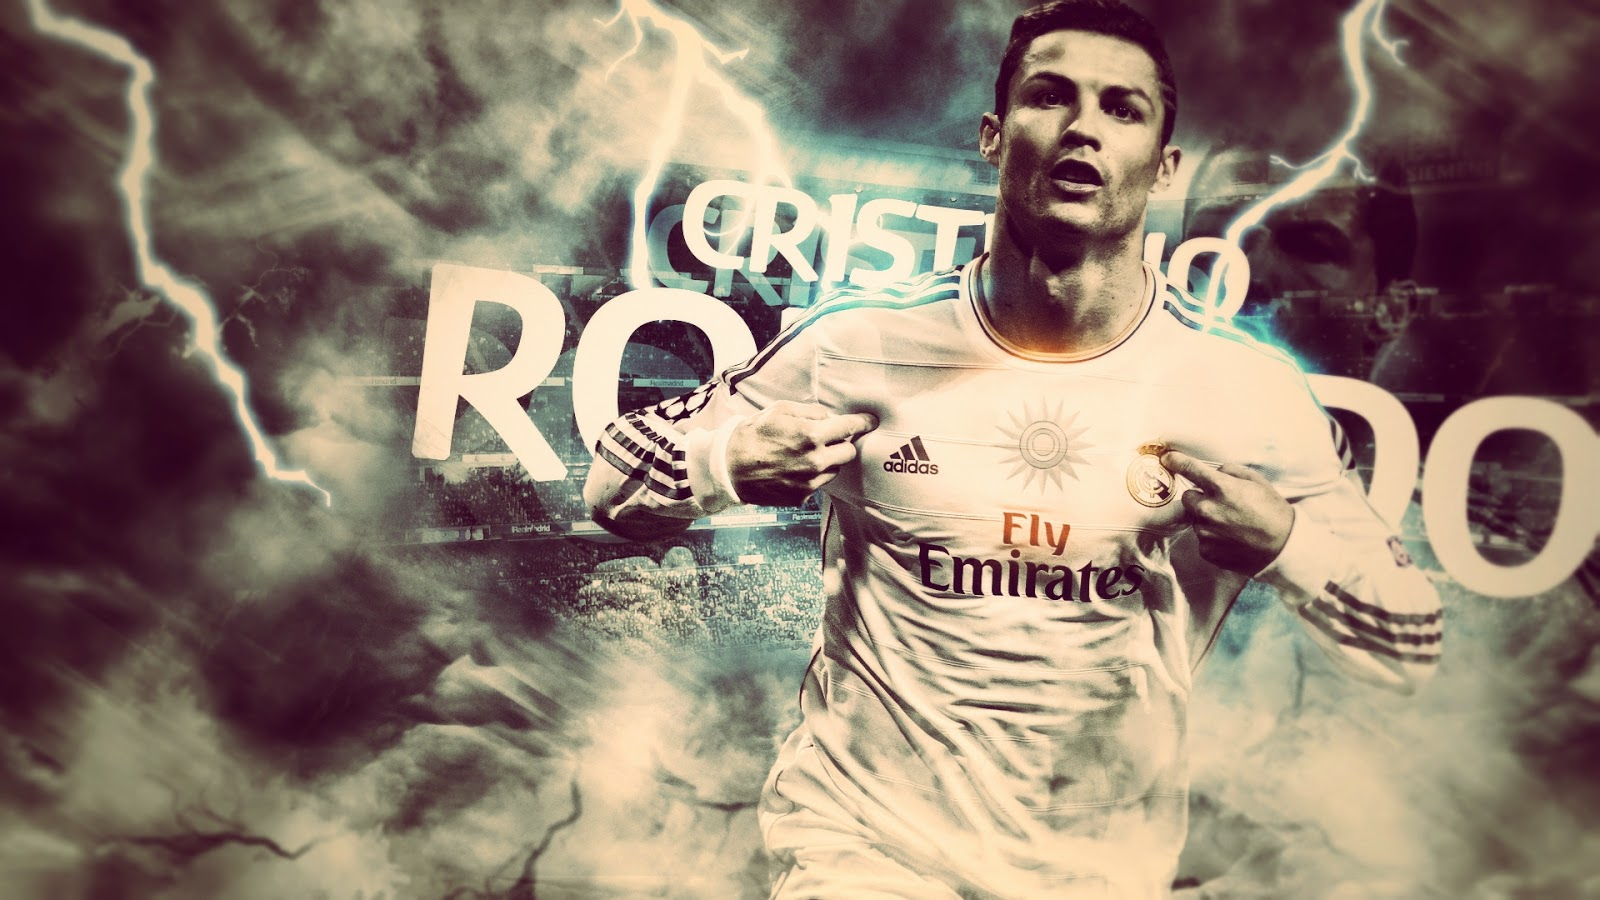 Cristiano Ronaldo Wallpaper Football Wallpaper Hd